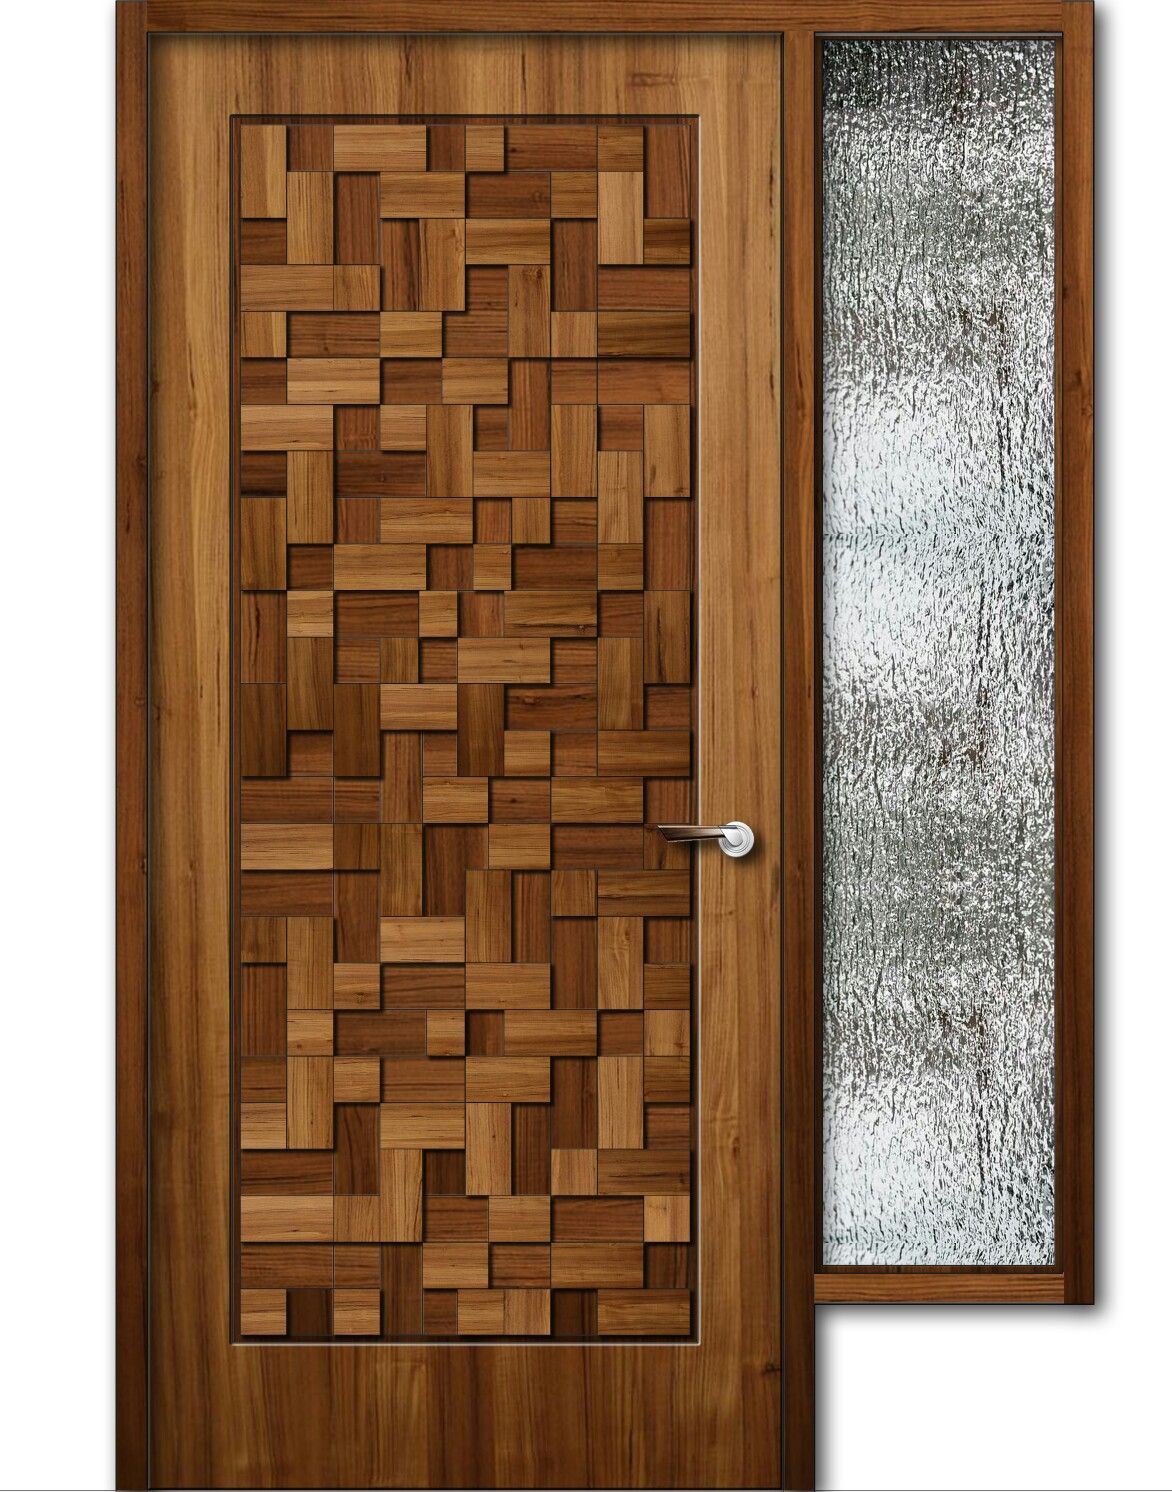 Teak wood finish wooden door with window 8feet height for Teak wood doors designs